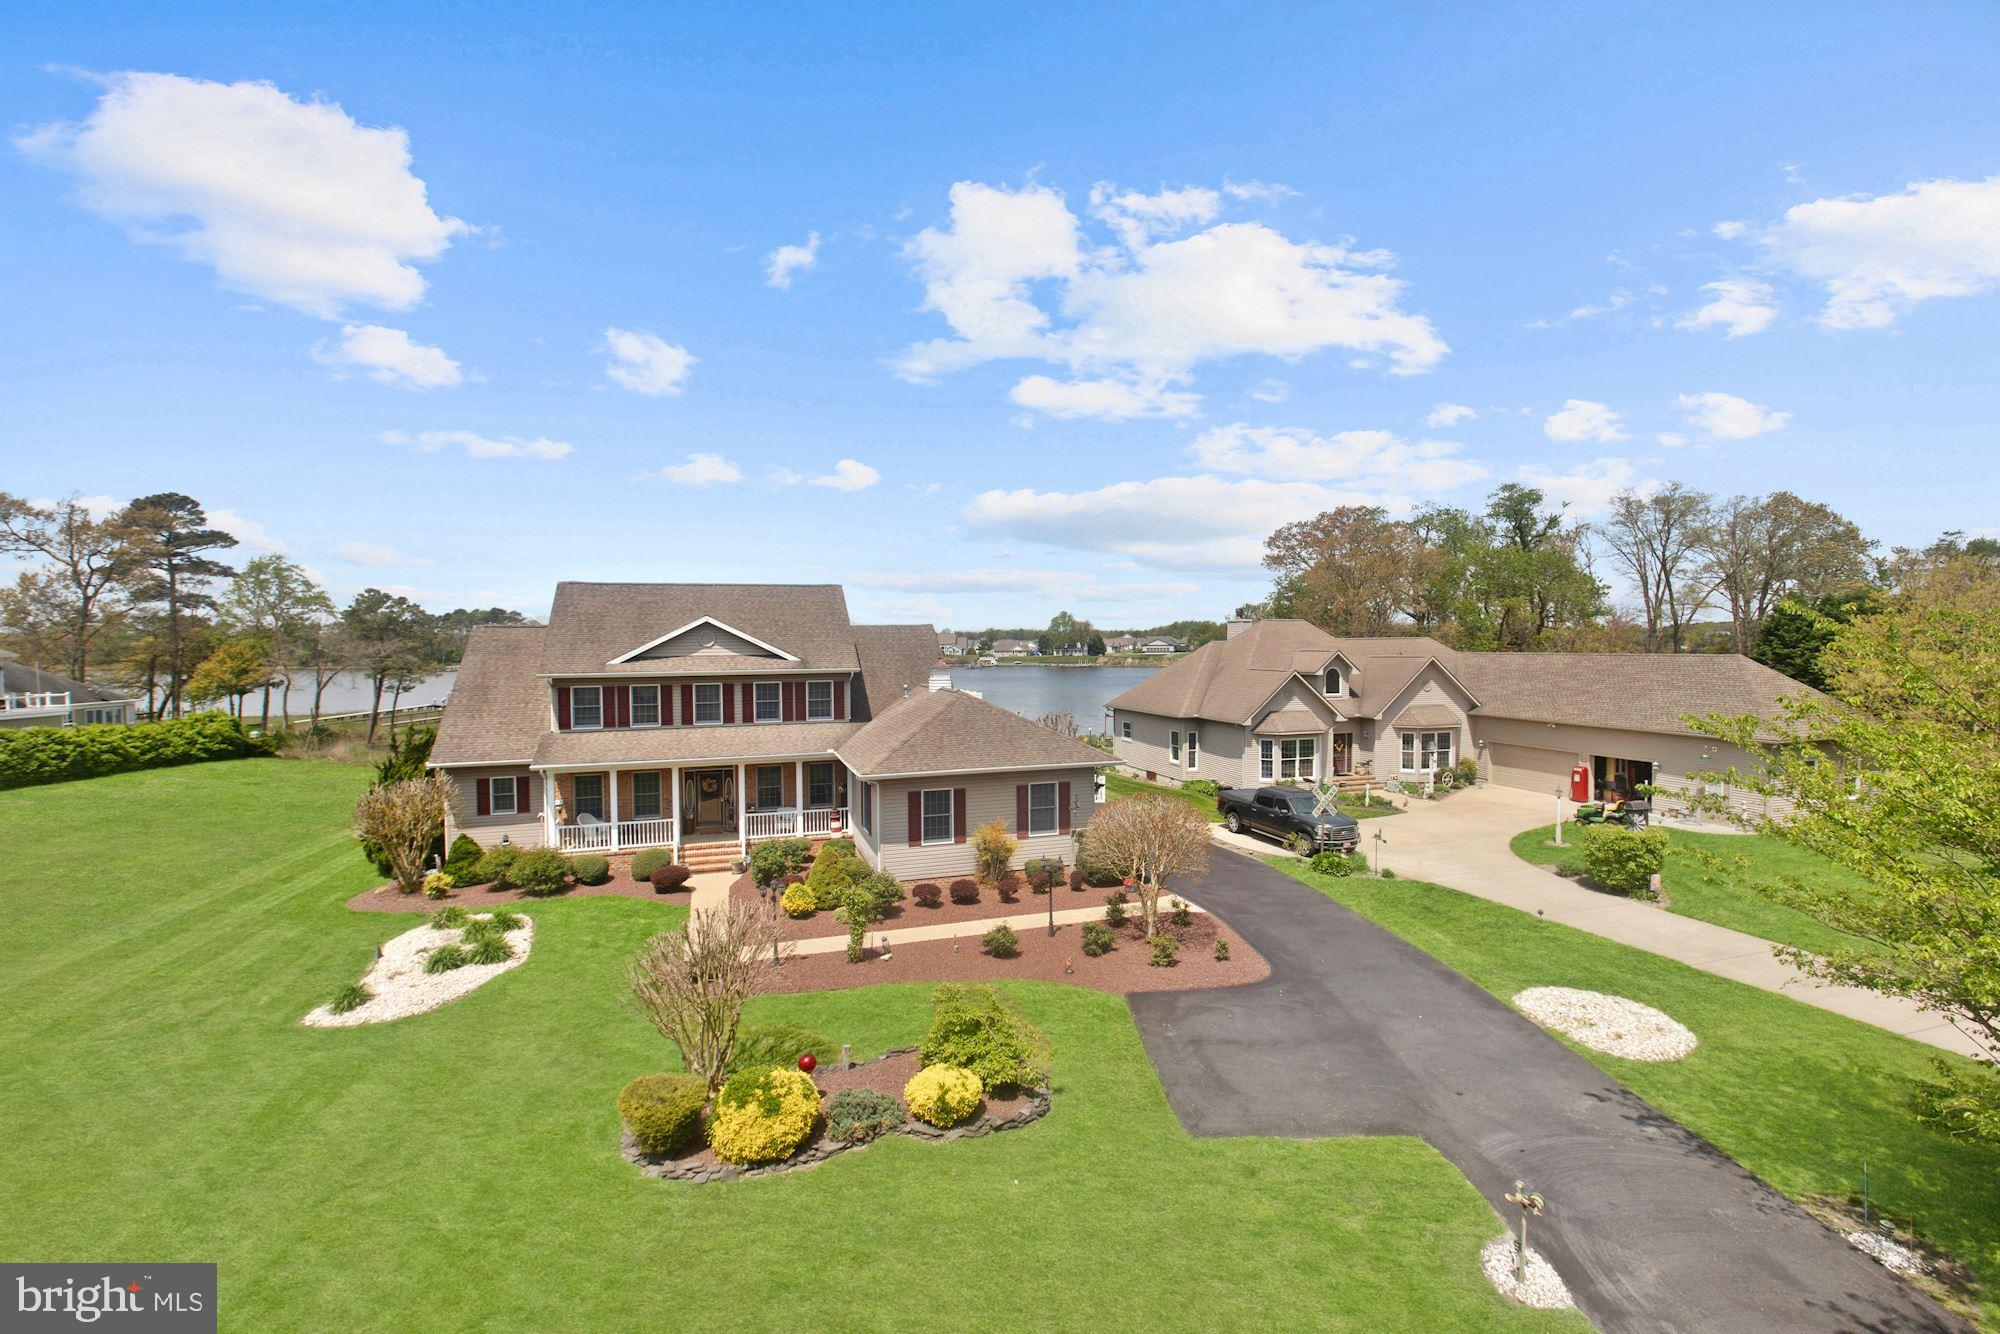 *VIEW THIS PROPERTY  VIRTUAL TOUR:  *http://spws.homevisit.com/mls/294074/122-RIVERVIEW-DR-DAGSBORO-DE-19939 **WATERFRONT with PRIVATE DOCK in the backyard!     This is the one you have been waiting for! Gorgeous custom built single family home in the much sought after community of the Point Farm. Custom features include a large main level master suite with a waterside sitting room, private bath, walk-in closet and private access to the deck for morning coffee and a view of the river. The main level open plan also includes a foyer sided by a separate dining room and study that unfold into a central waterside living space with a dramatic vaulted ceiling, gas fireplace, and dual sliders to an expansive composite deck overlooking a fully stocked koi pond.   Quality upgrades are a standard throughout this custom luxury residence, including Anderson sliders, windows, and remote awnings that wrap the living room, sun room and family room. Open to panoramic views, an entertainer's kitchen is fully equipped for any occasion with a center island, prep sink, breakfast bar, wine rack and cooler.  Plate your creations and dine inside, or gather with friends and family outside for a festive BBQ on the dining deck, stimulating patio conversations or refreshing water activities on the private pier and dock. Separately zoned, the second floor features include three bedrooms, one guest en-suite with a private attached bath and access to its own upper level deck and river sunsets. Two additional generously sized bedrooms and a shared bath provide plenty of room for visiting guests.Sited on a premium lot that is beautifully landscaped with immaculate low-maintenance materials, this pristine luxury property offers amenities for every one of every age. The Point Farm community located just west of Bethany Beach, offers tennis courts and low HOA fees. Life is short, move to the beach and enjoy inspired waterfront living!